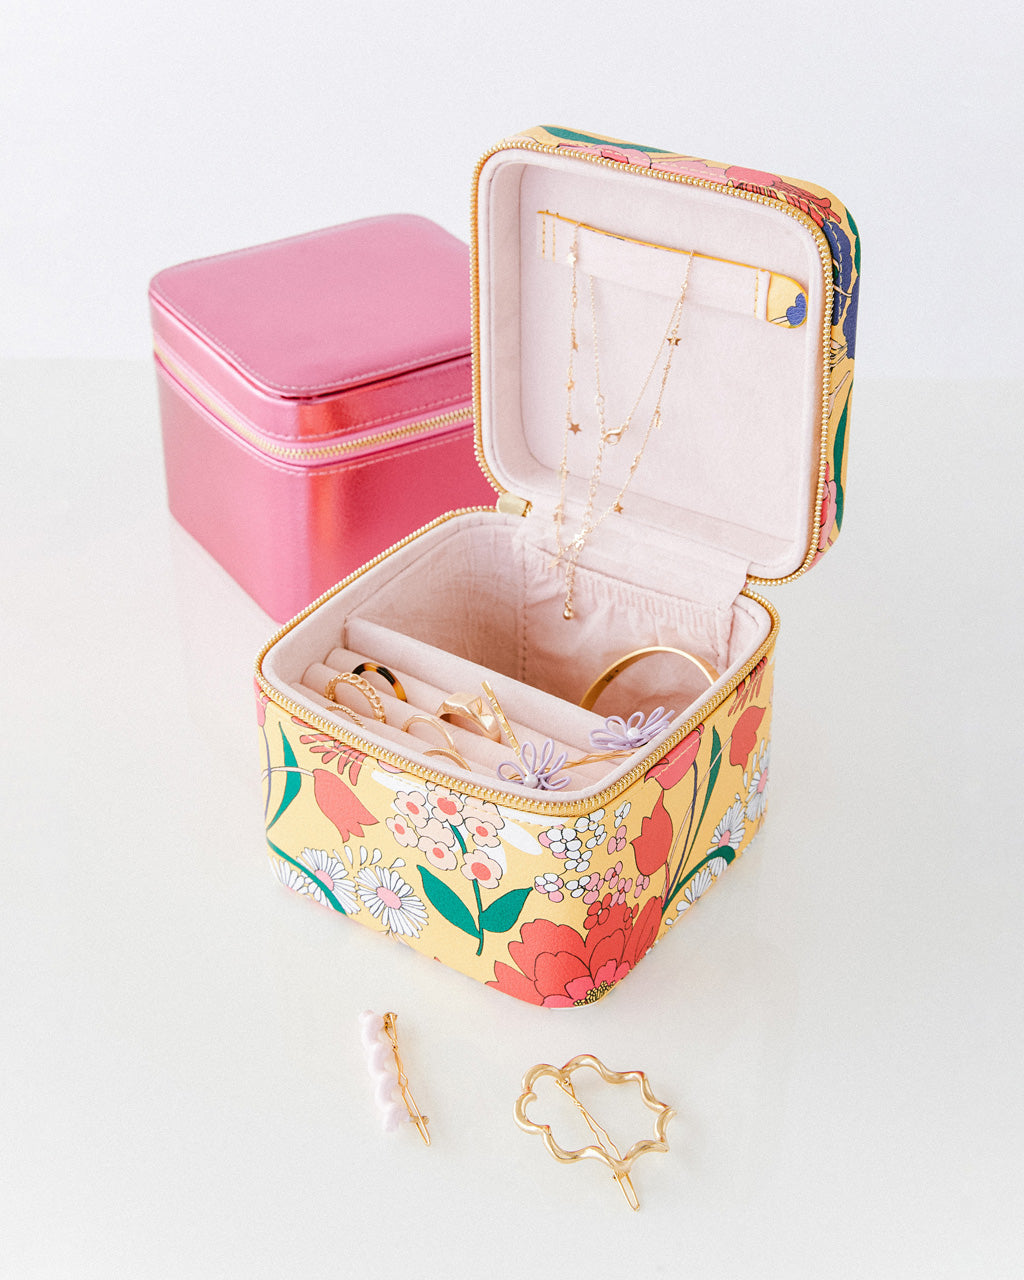 Getaway Jewelry Organizer - Sunshine Super Bloom